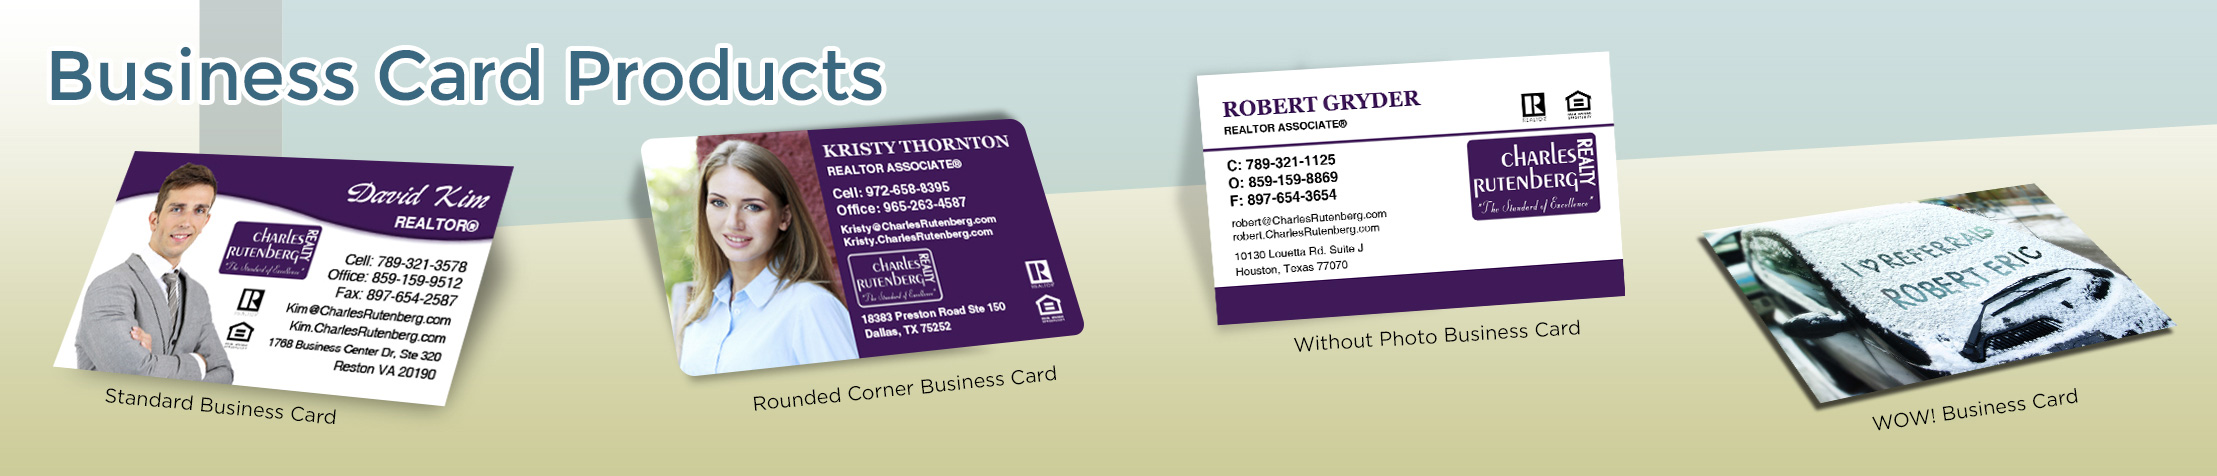 Charles Rutenberg Realty Real Estate Business Card Products - Charles Rutenberg Realty  - Unique, Custom Business Cards Printed on Quality Stock with Creative Designs for Realtors | BestPrintBuy.com